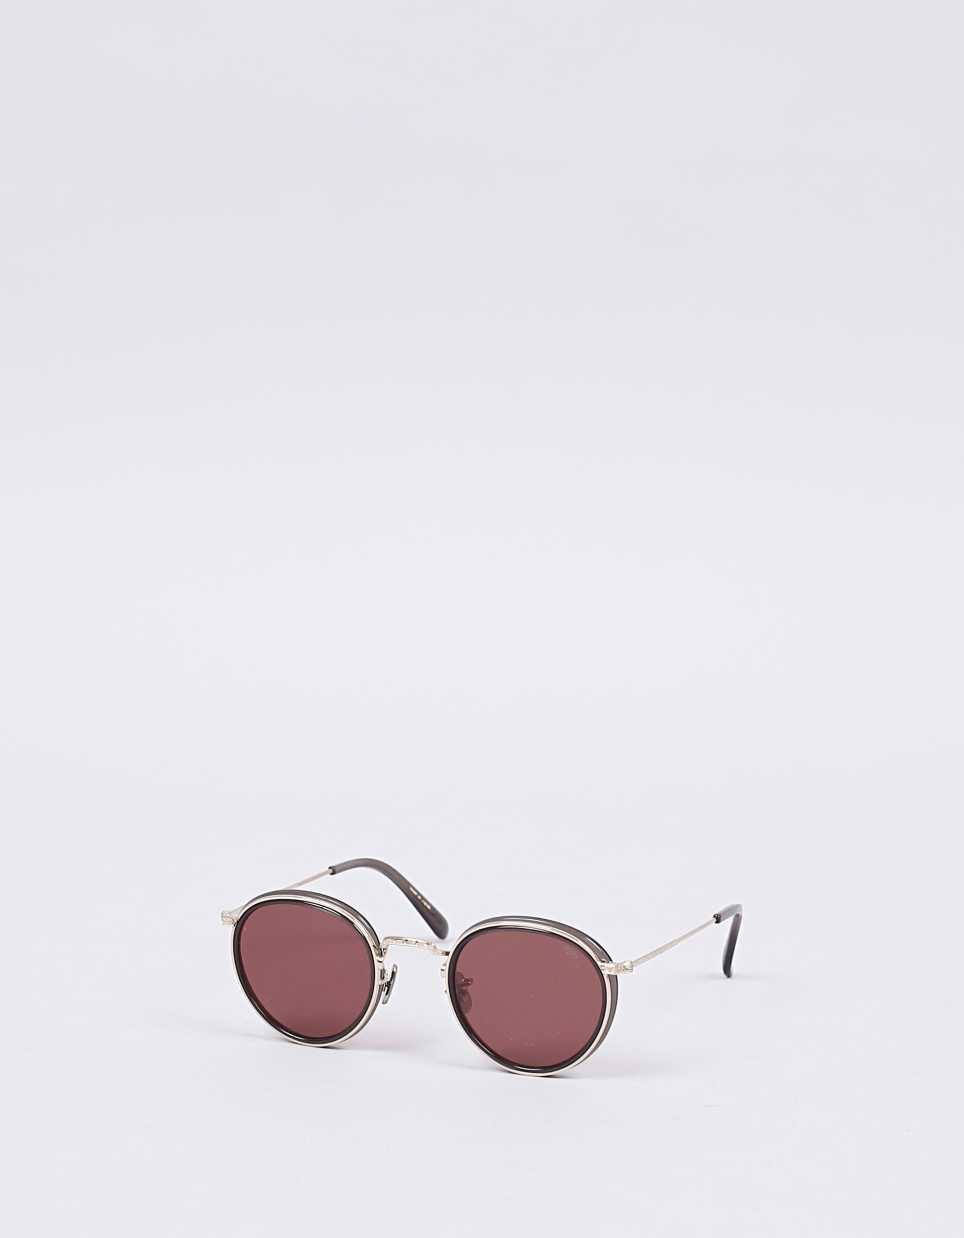 Eyevan 7285 Model 538 Metal Frame Red Lens